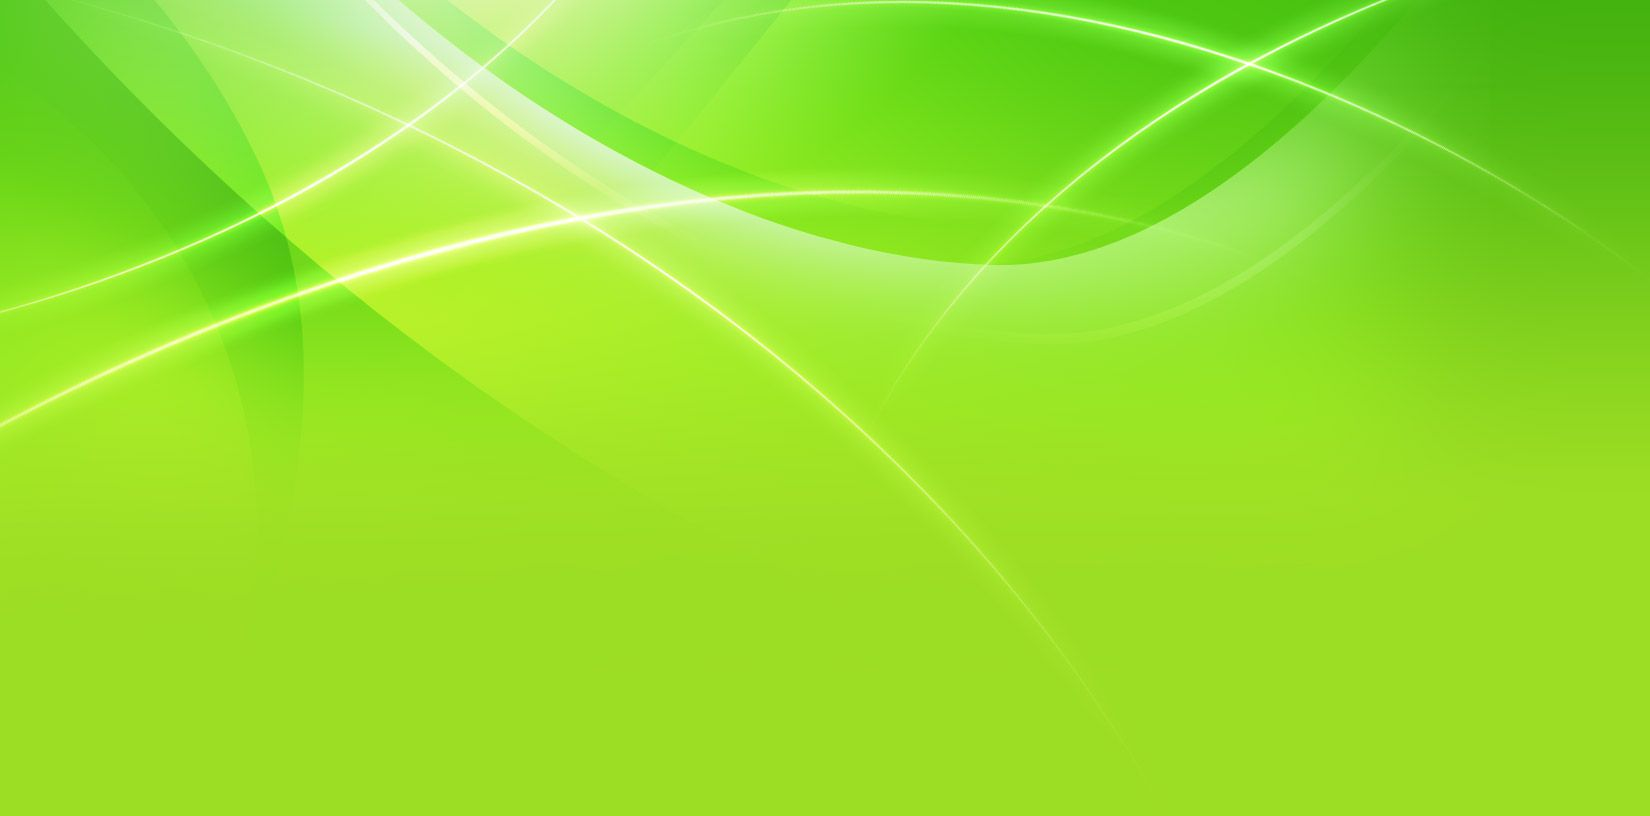 Cool Green Backgrounds With Images Cool Green Backgrounds